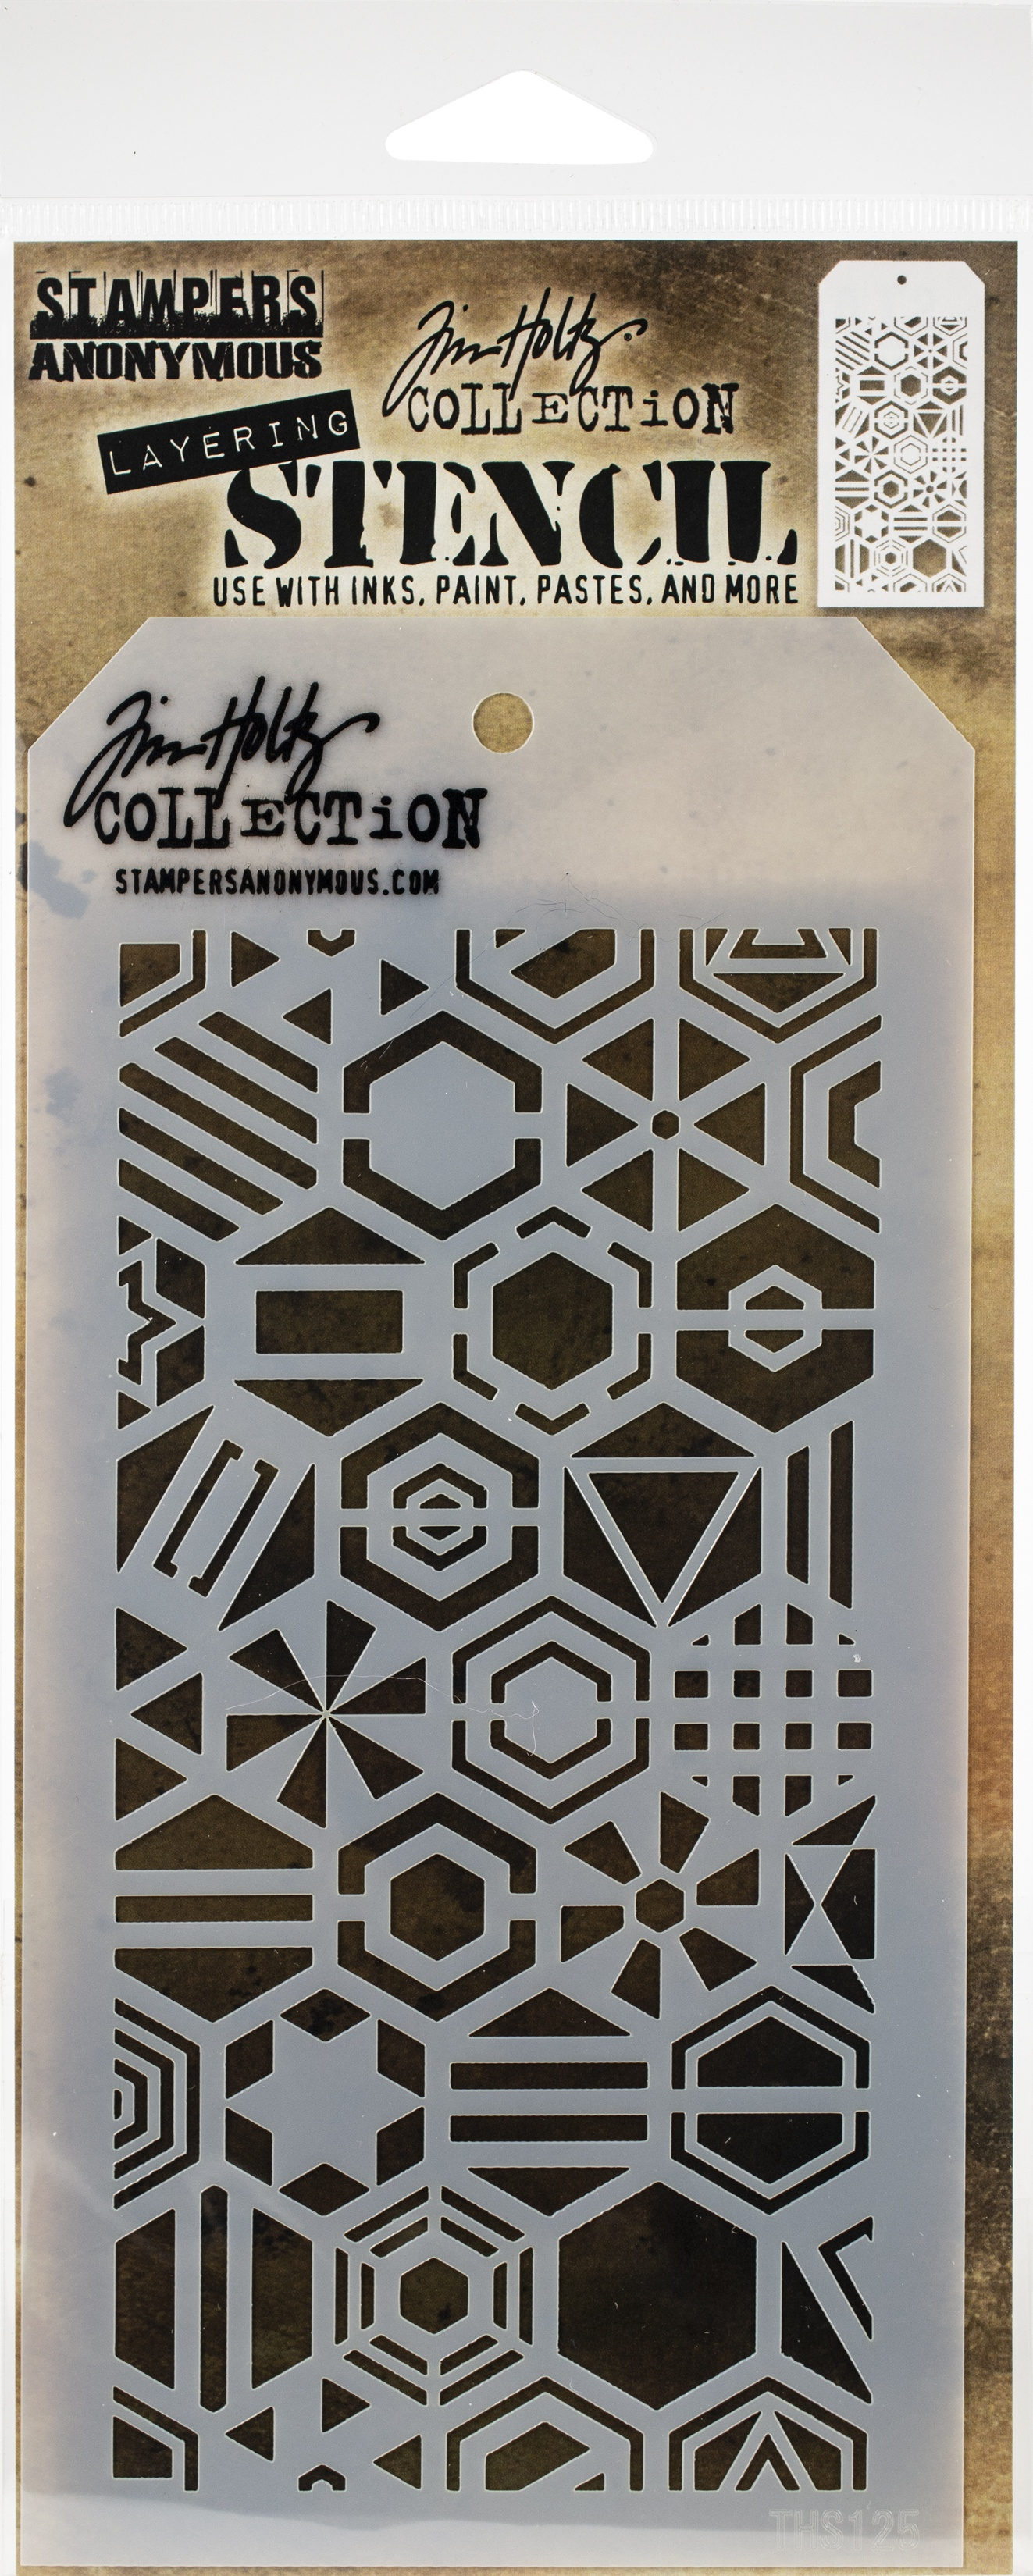 Tim Holtz Layered Stencil 4.125X8.5-Patchwork Hex